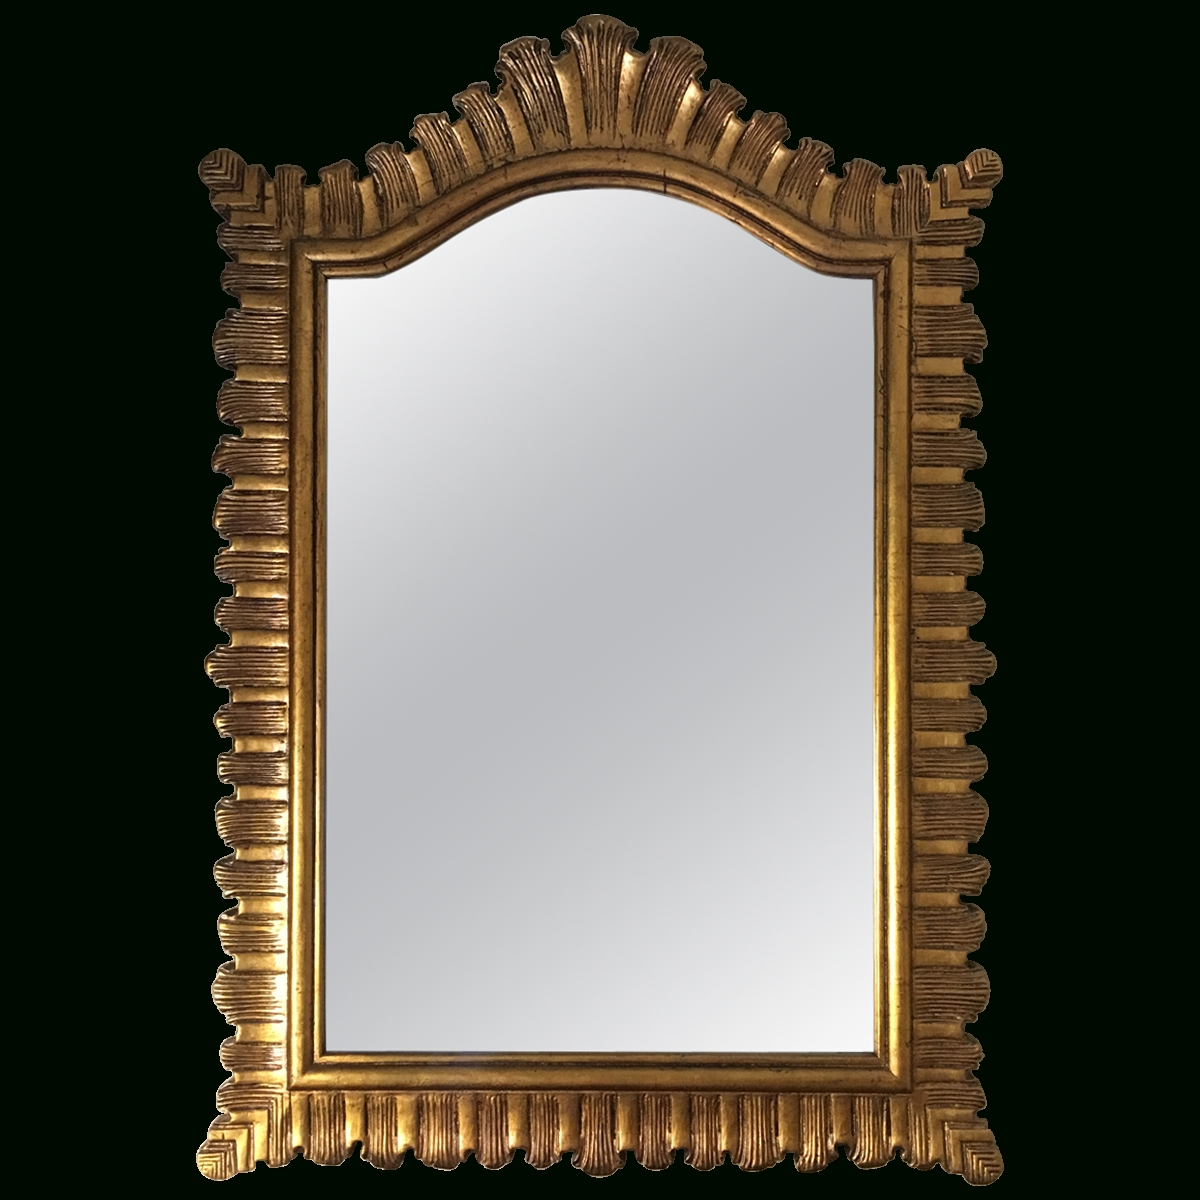 Viyet - Designer Furniture - Accessories - Traditional Large Gold regarding Gilt Framed Mirrors (Image 25 of 25)